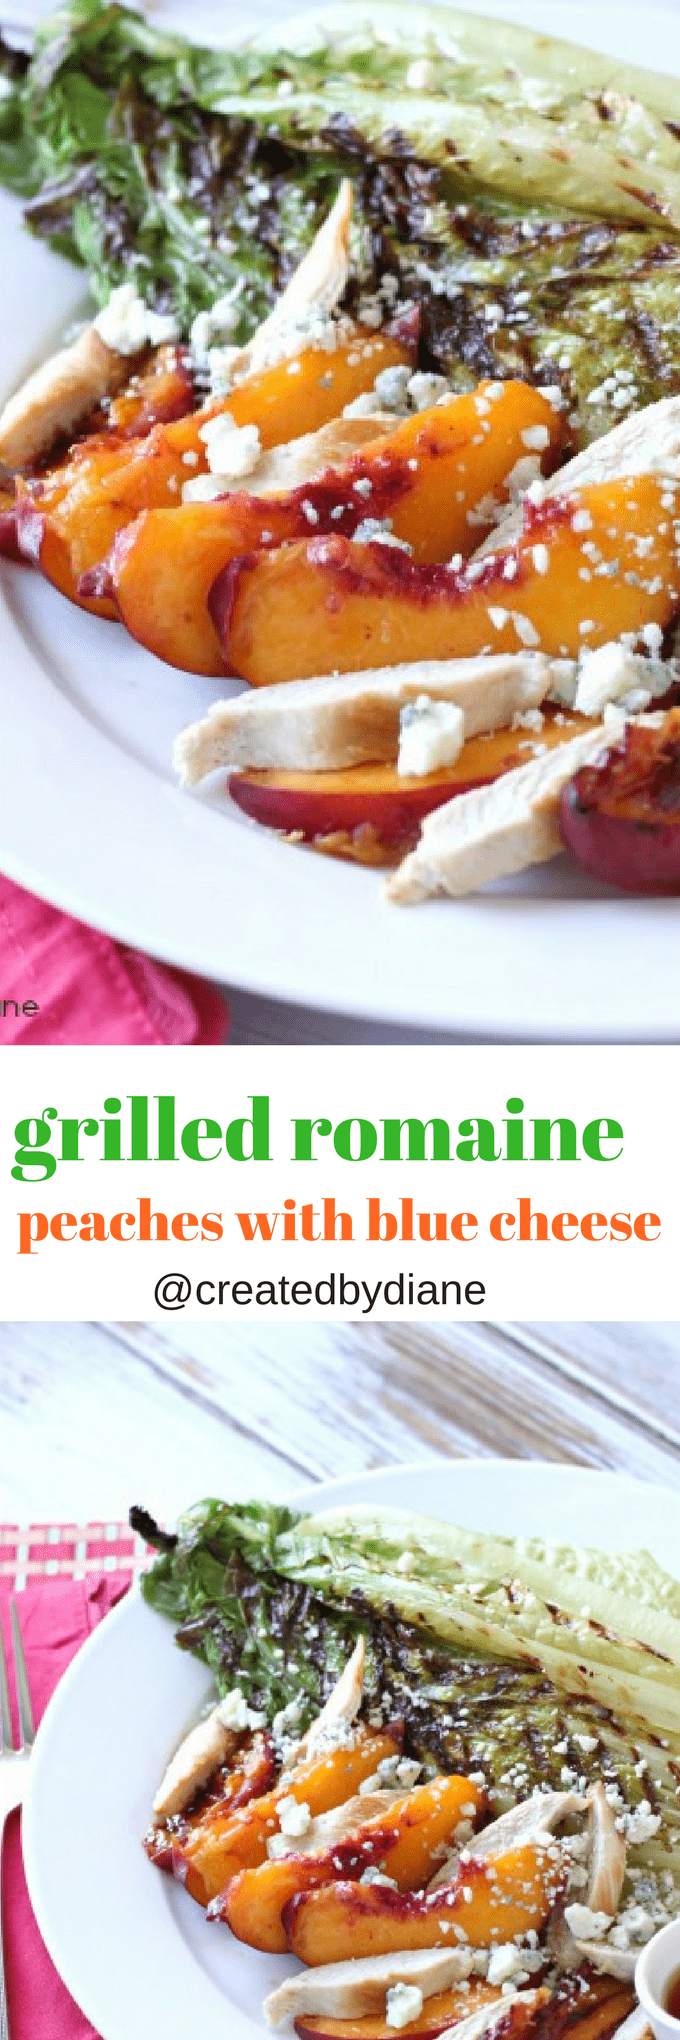 grilled romaine with chicken peaches and blue cheese @createdbydiane